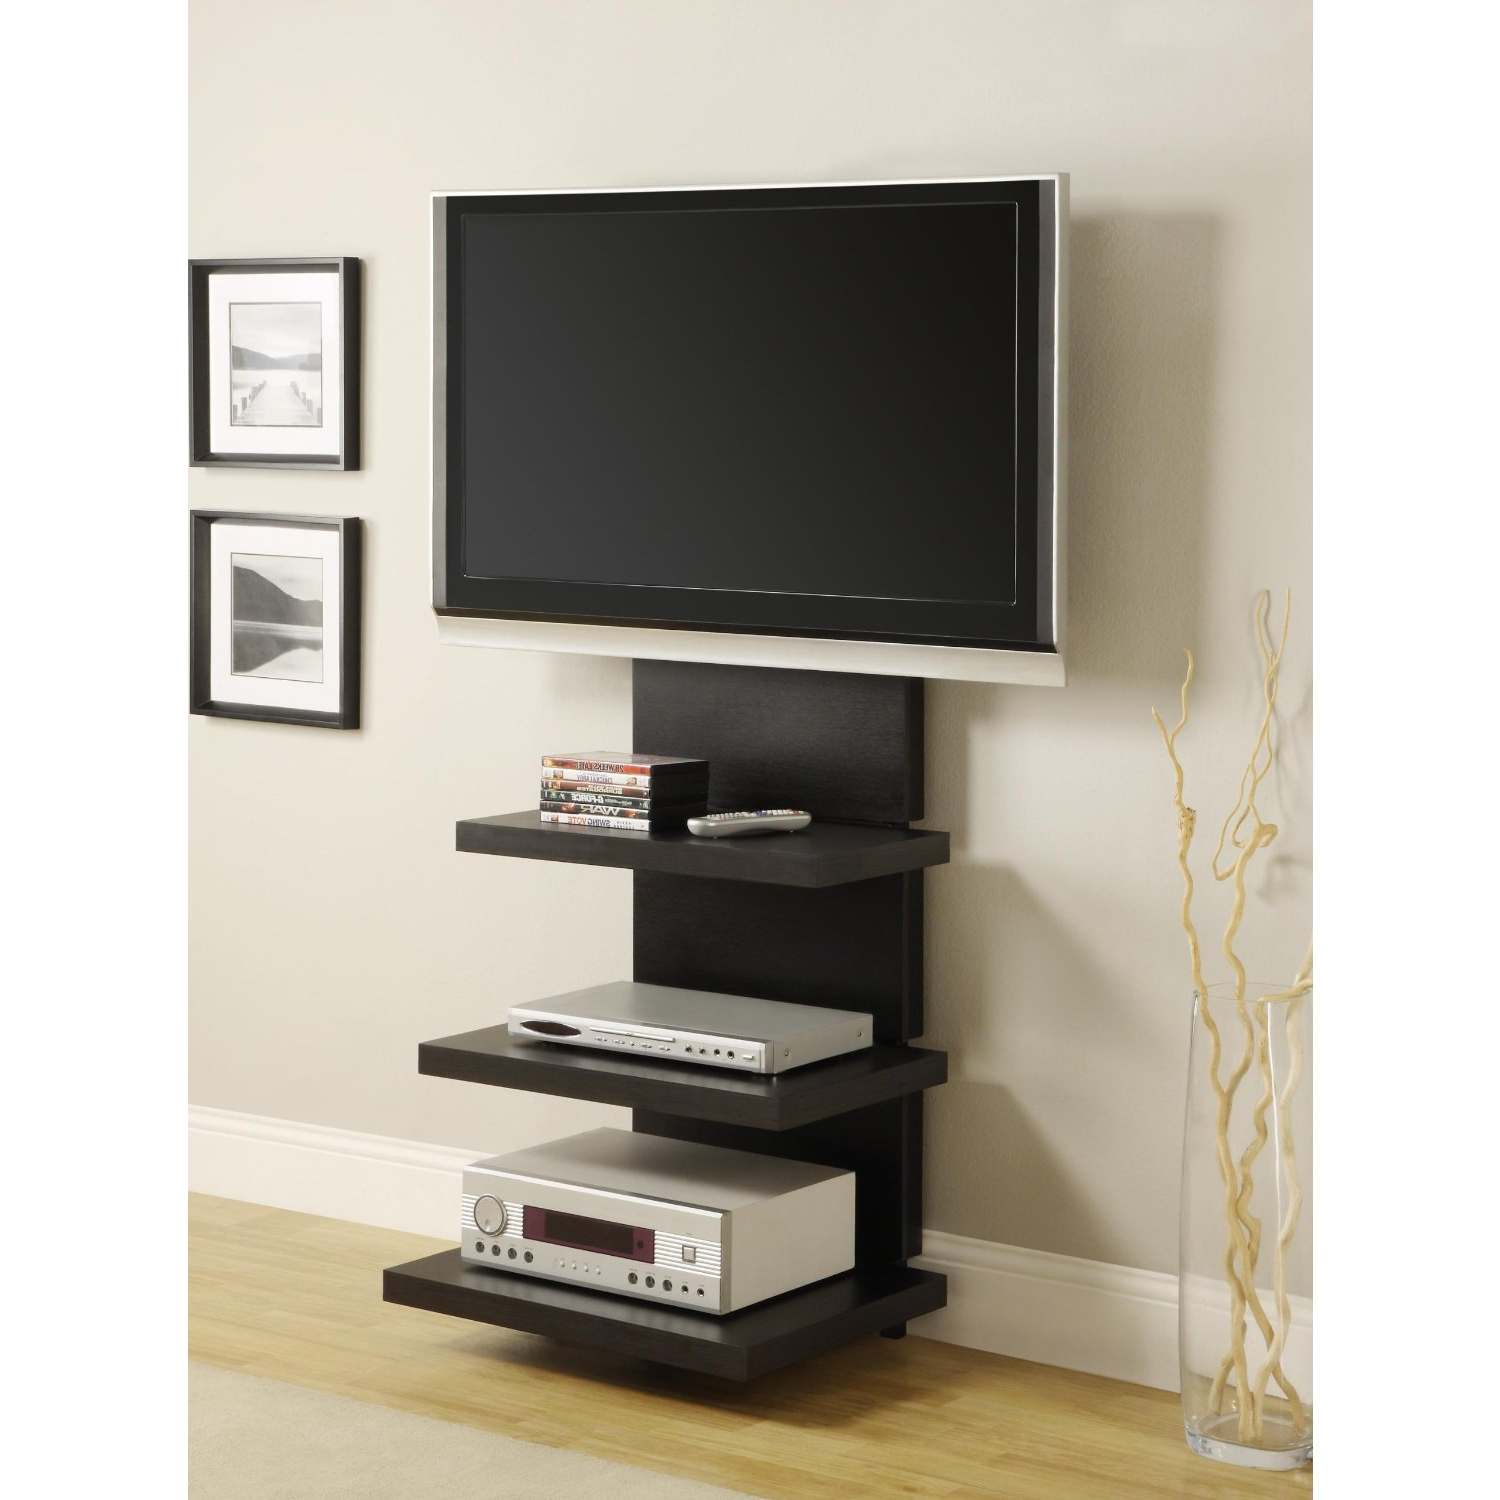 2018 Contemporary Corner Tv Stands Intended For Bedroom Thin Tv Stand For Bedroom Modern Corner Tv Unit Tv Stands (Gallery 14 of 20)